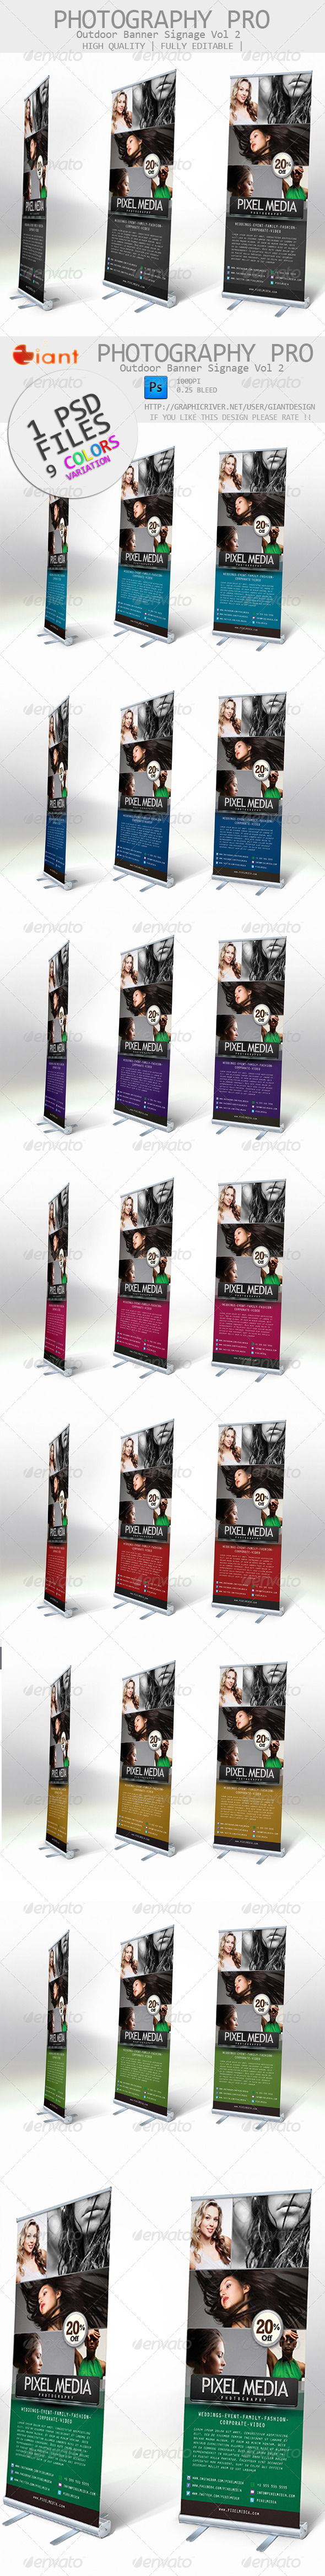 GraphicRiver Photography Pro Outdoor Banner Signage vol 2 6298429